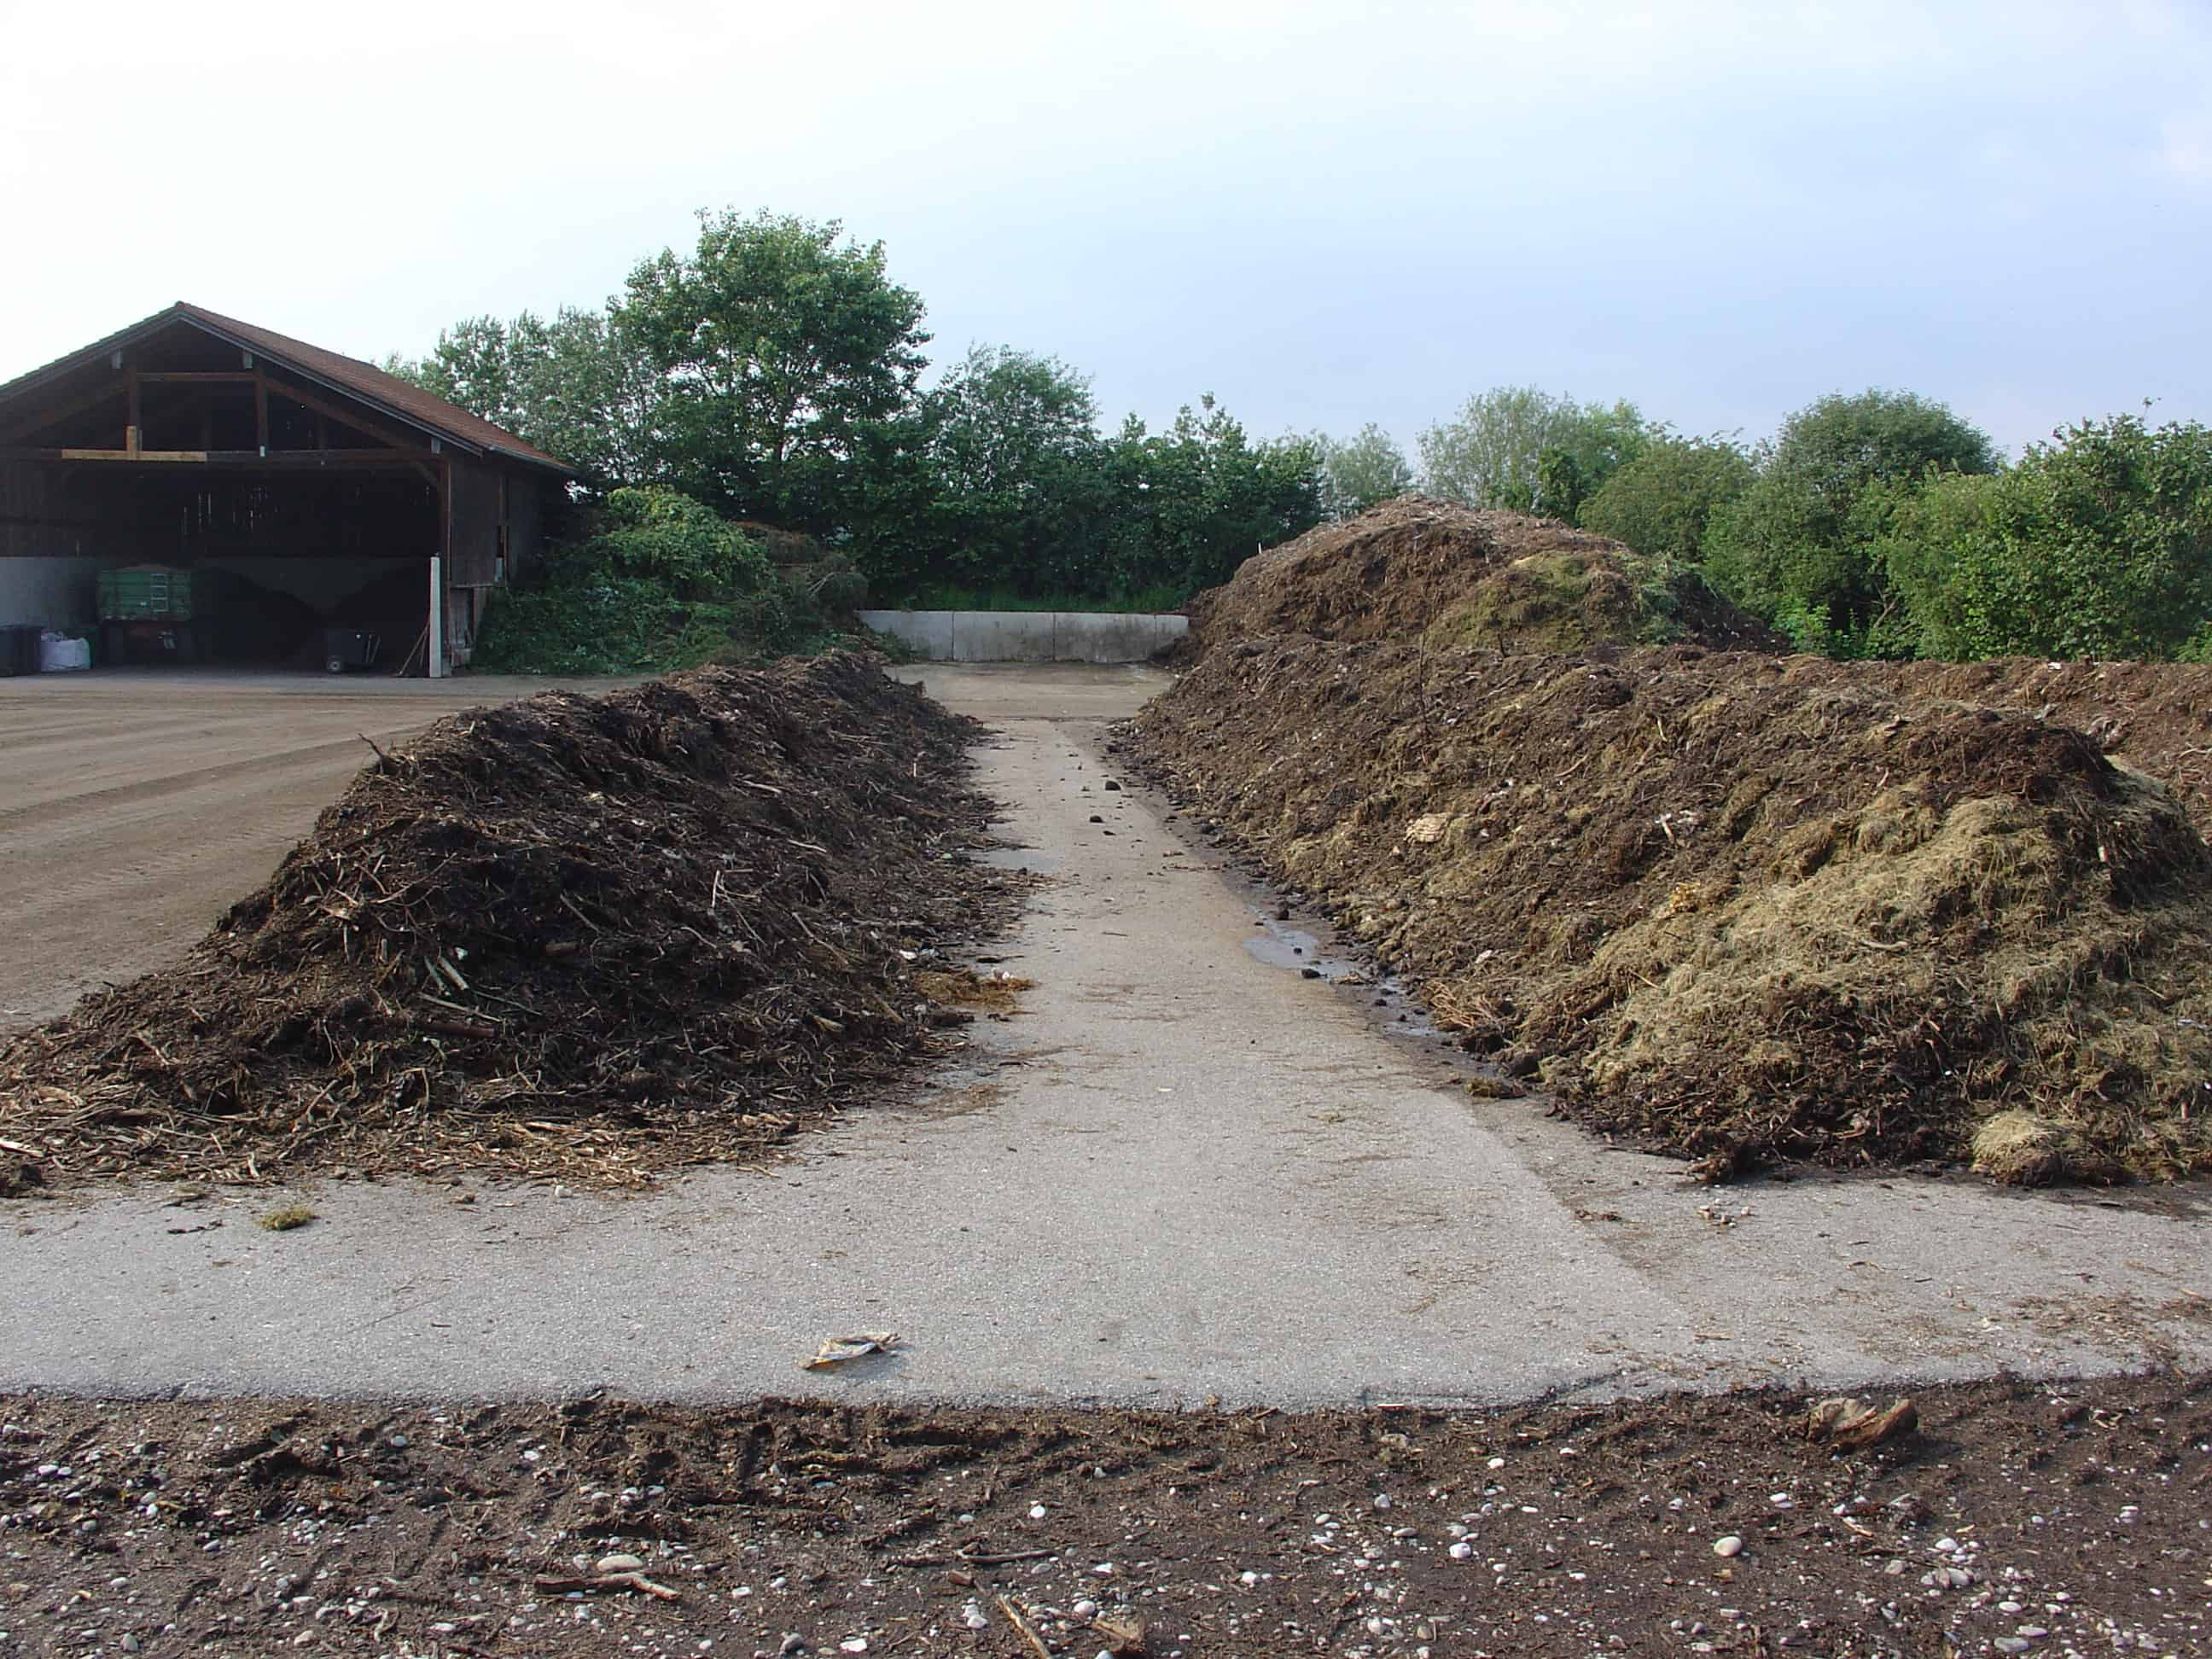 A community composting site in Germany.